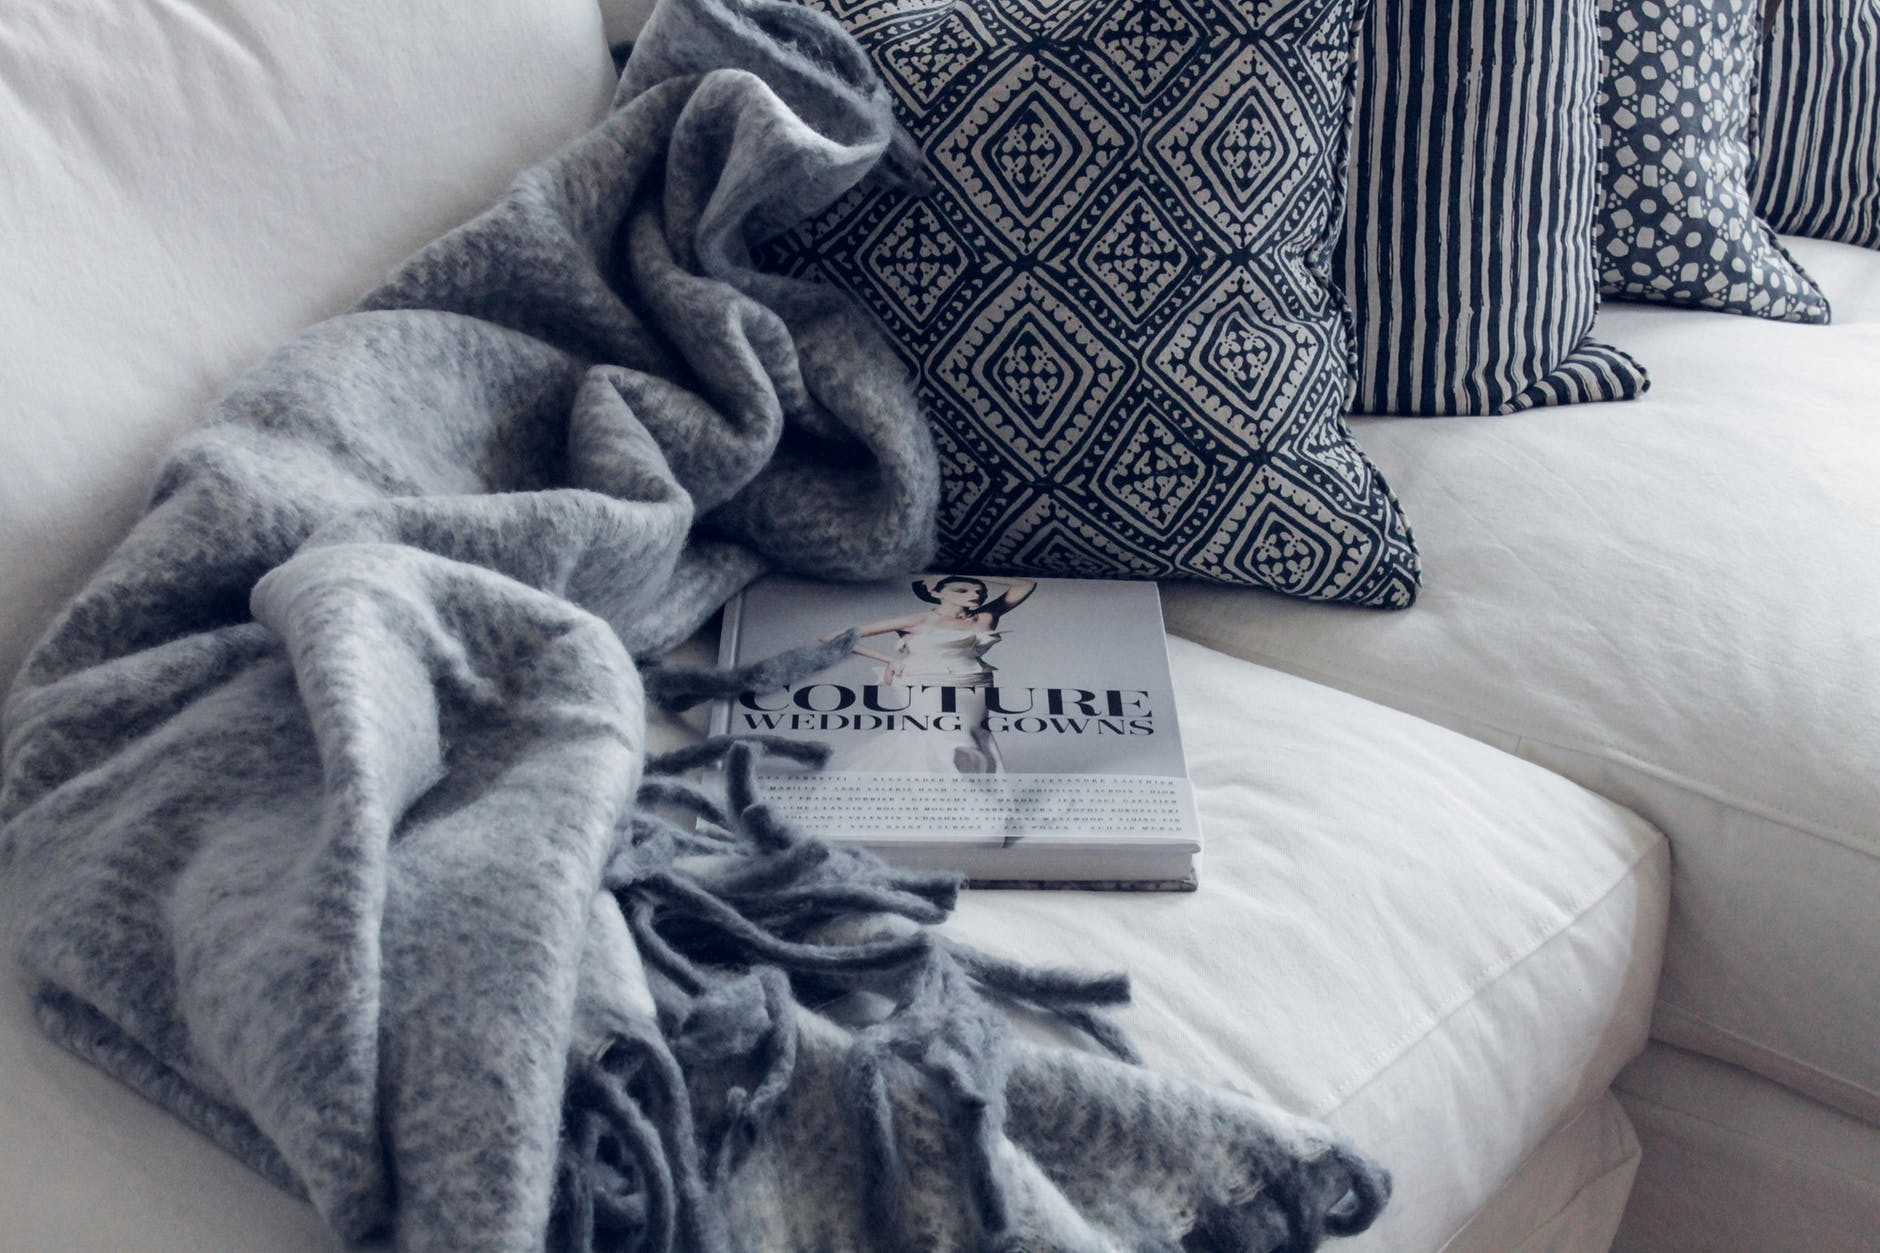 couture book on sofa